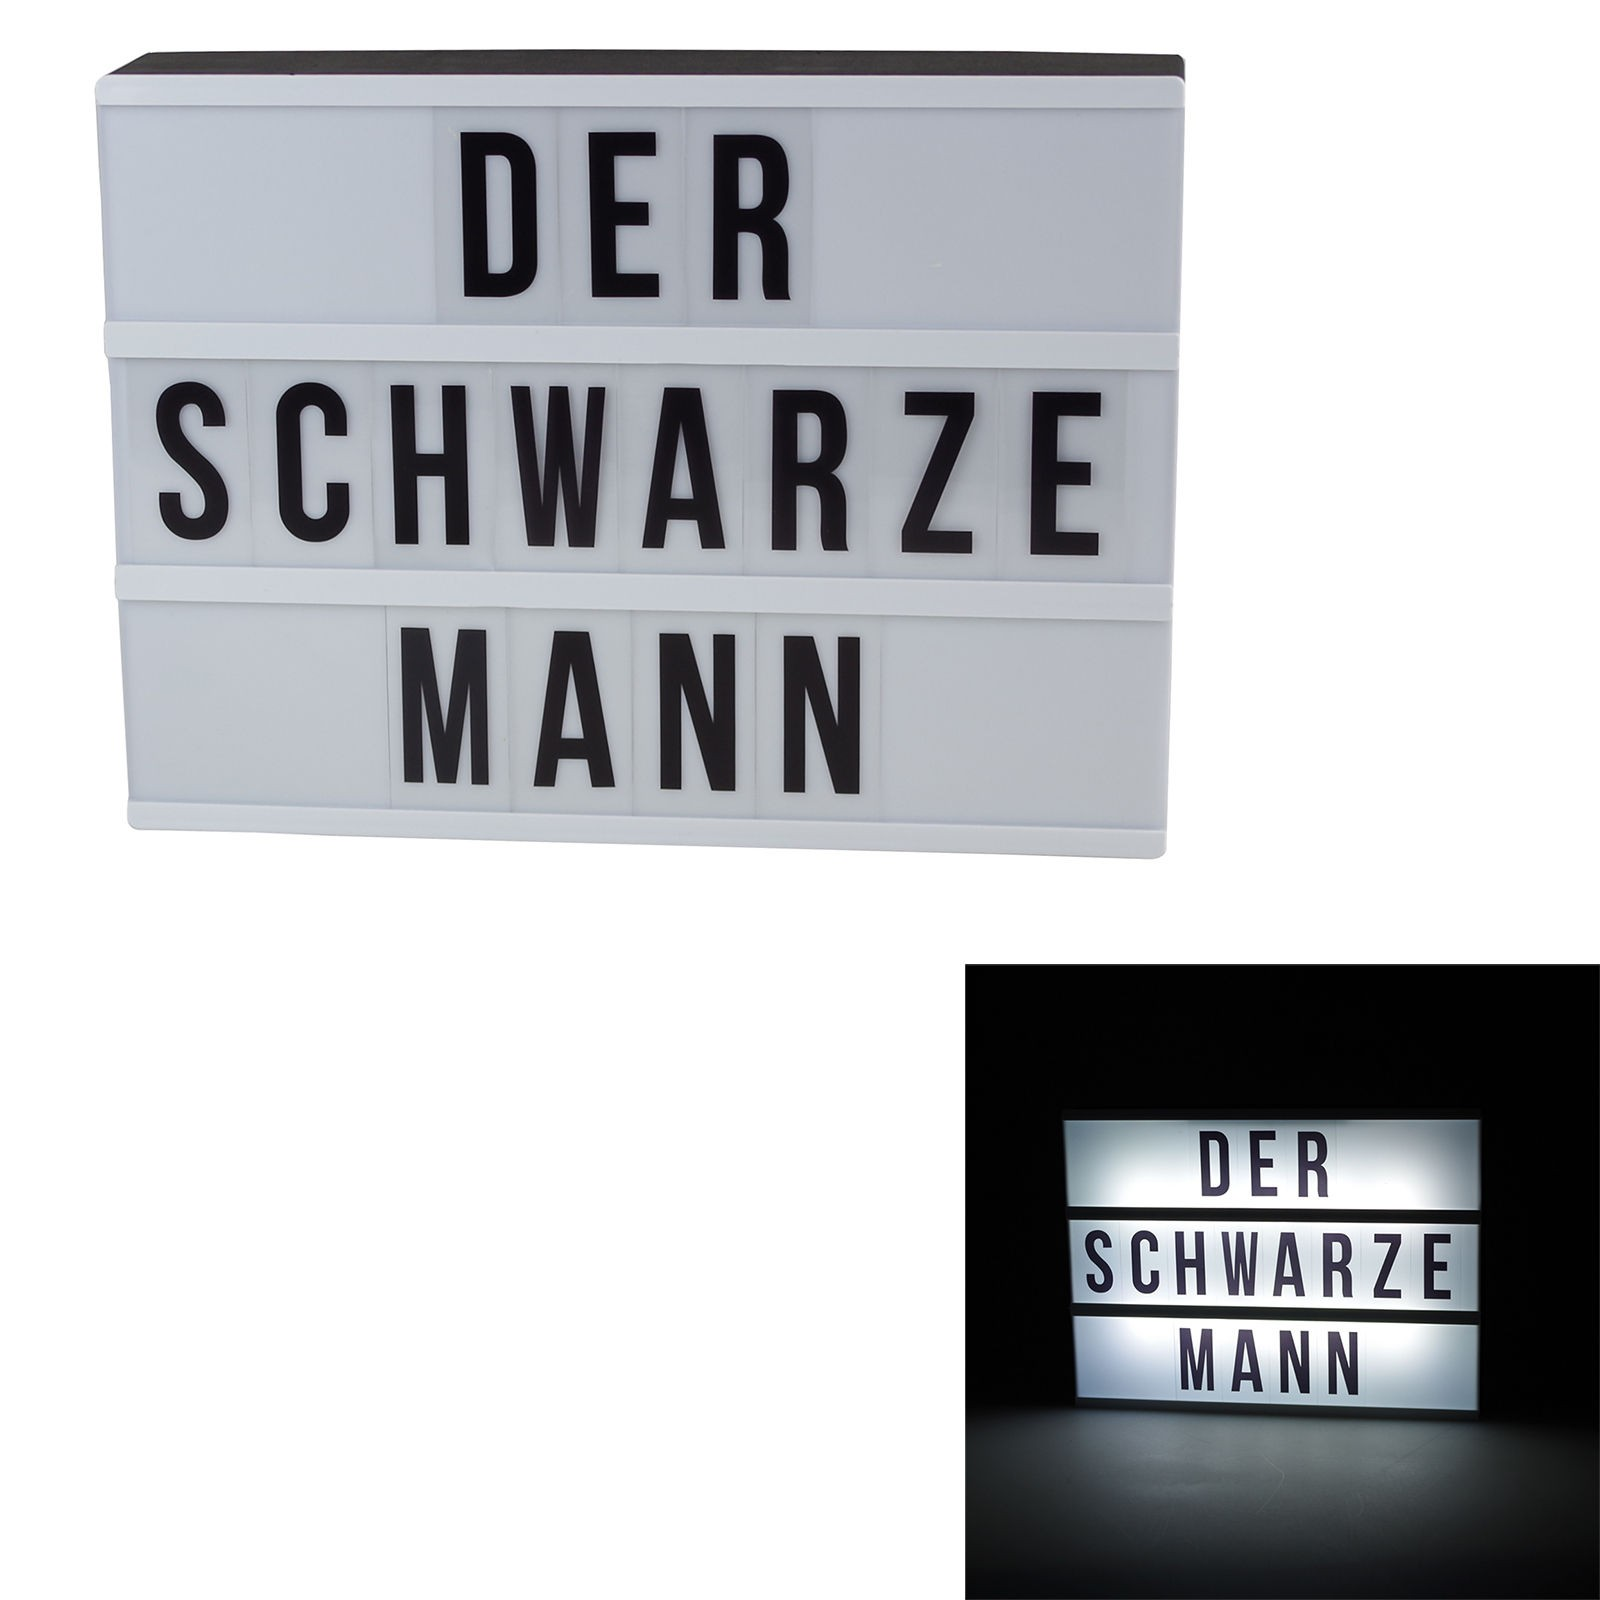 leuchtkasten led mit batteriebetrieb inkl buchstaben symbole lampe. Black Bedroom Furniture Sets. Home Design Ideas